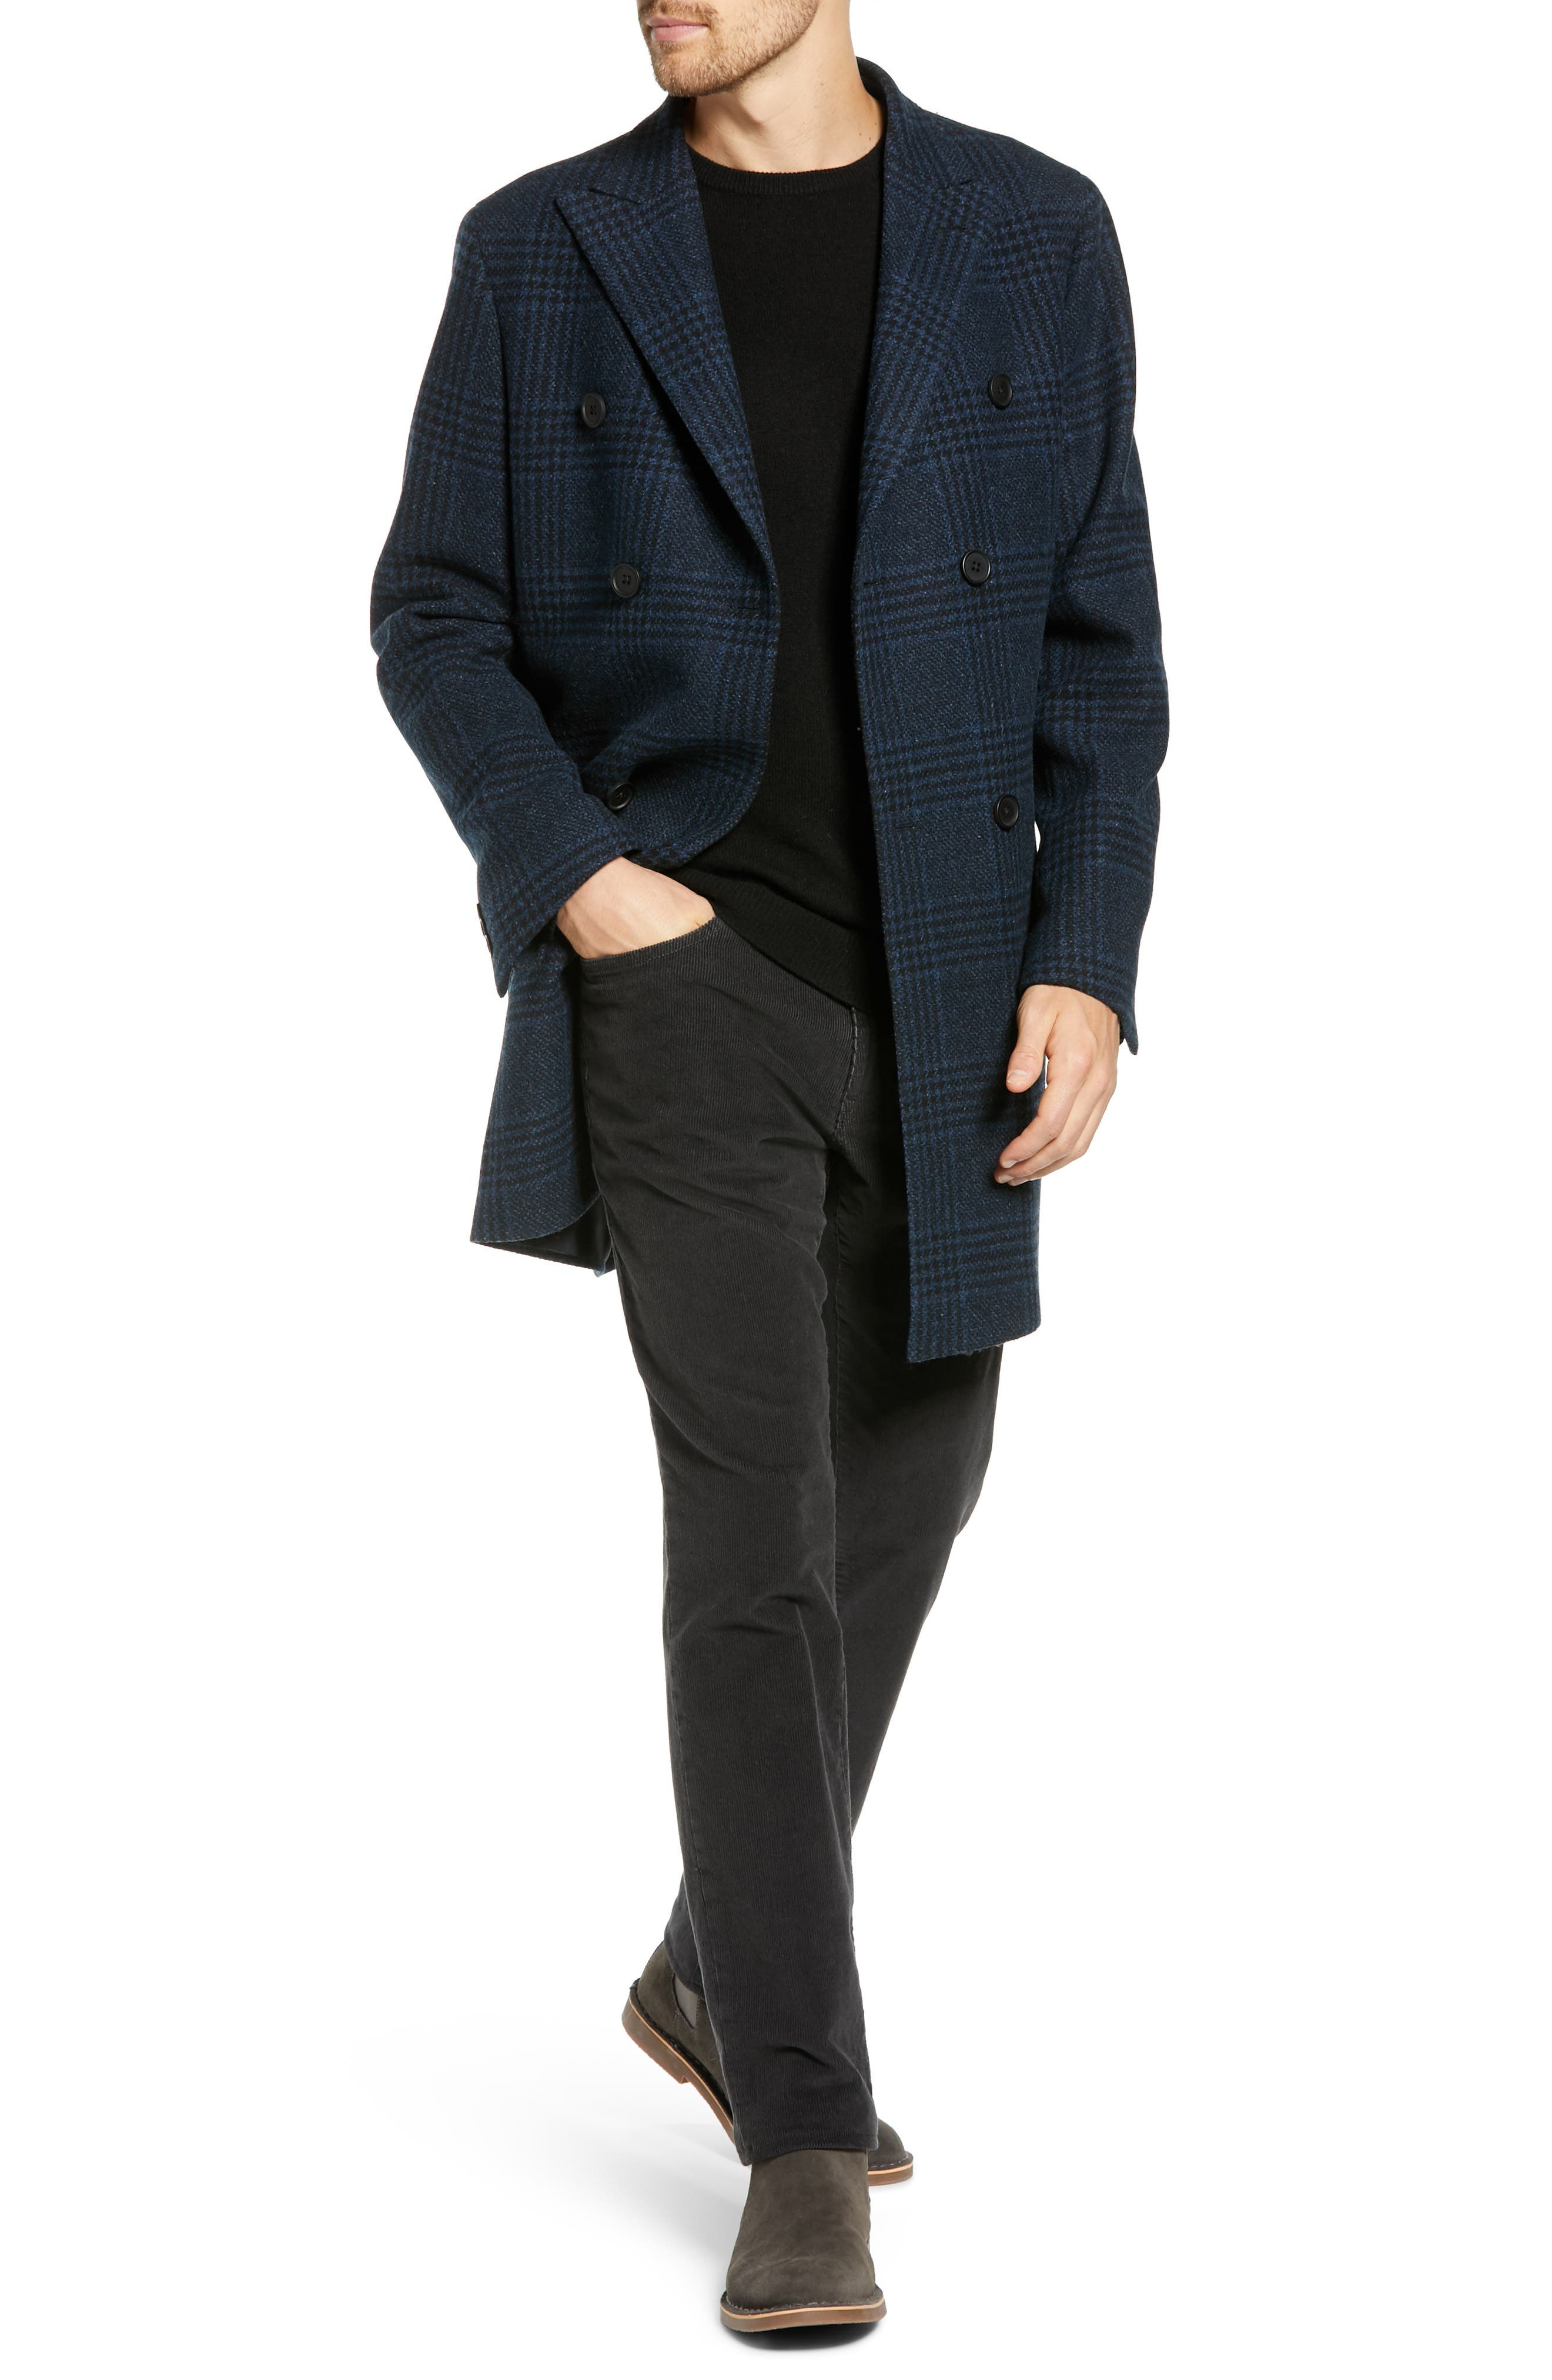 Jackson Extra Trim Fit Wool Overcoat,                             Alternate thumbnail 4, color,                             NAVY